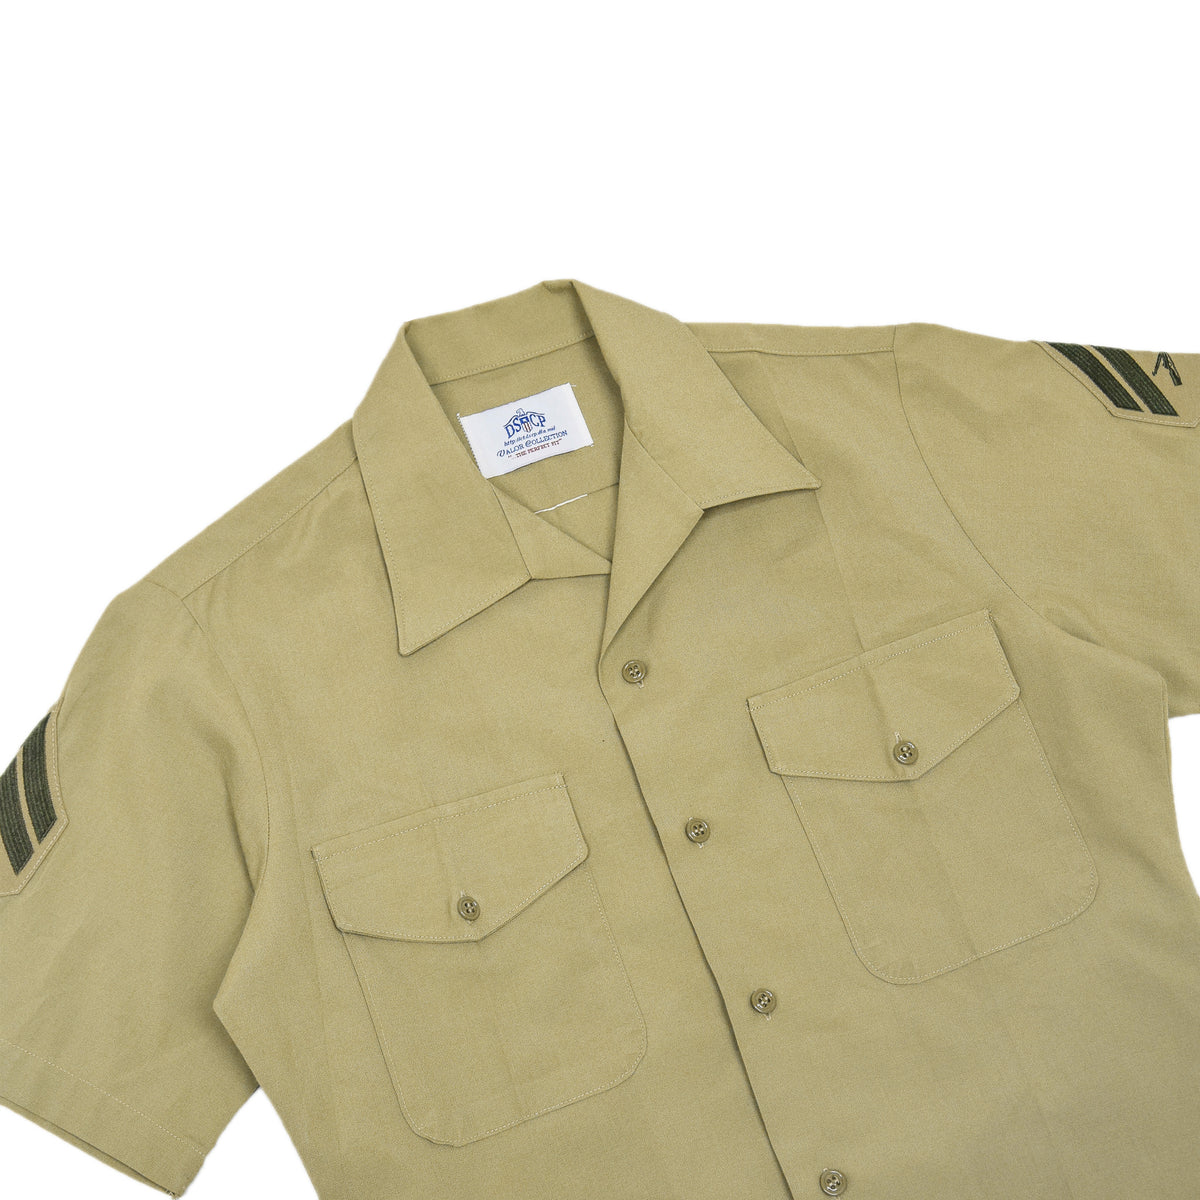 US Army DSCP Short Sleeve Khaki Cotton Military Field Shirt S chest